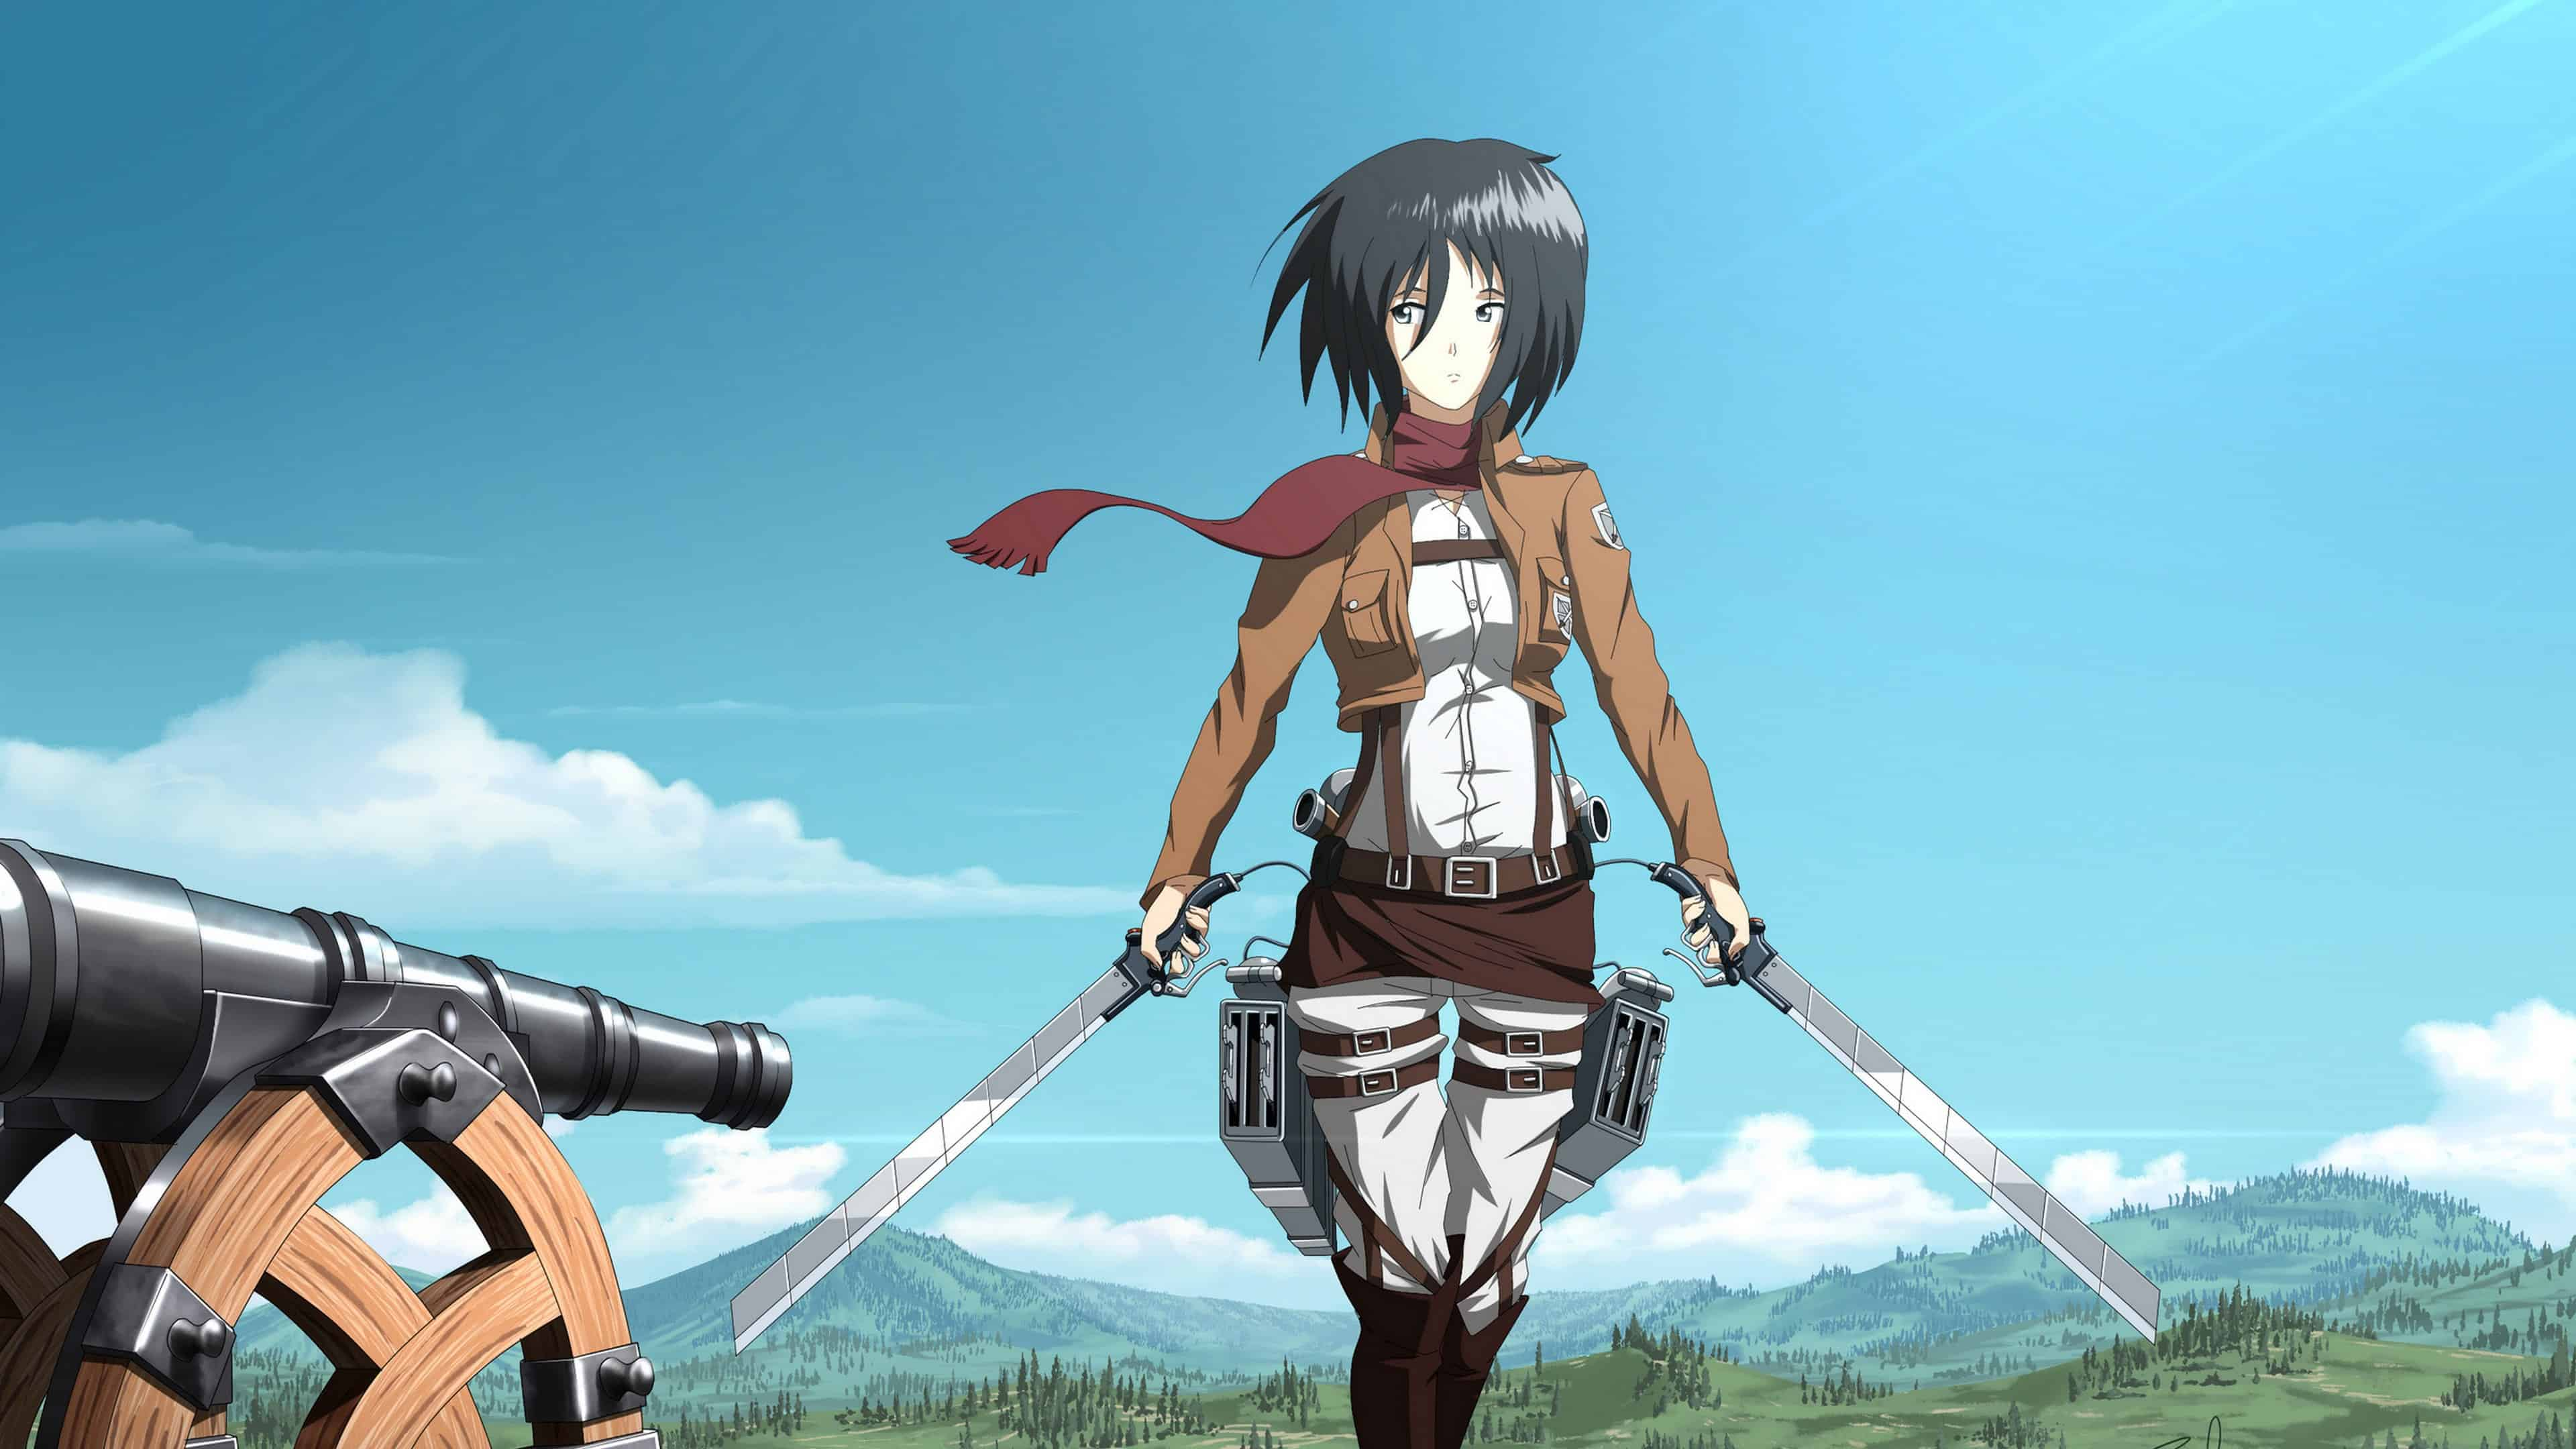 4k Mikasa Ackerman Hd Desktop Wallpaper Attack On Titan Wallpaper 4k Mikasa 3840x2160 Download Hd Wallpaper Wallpapertip